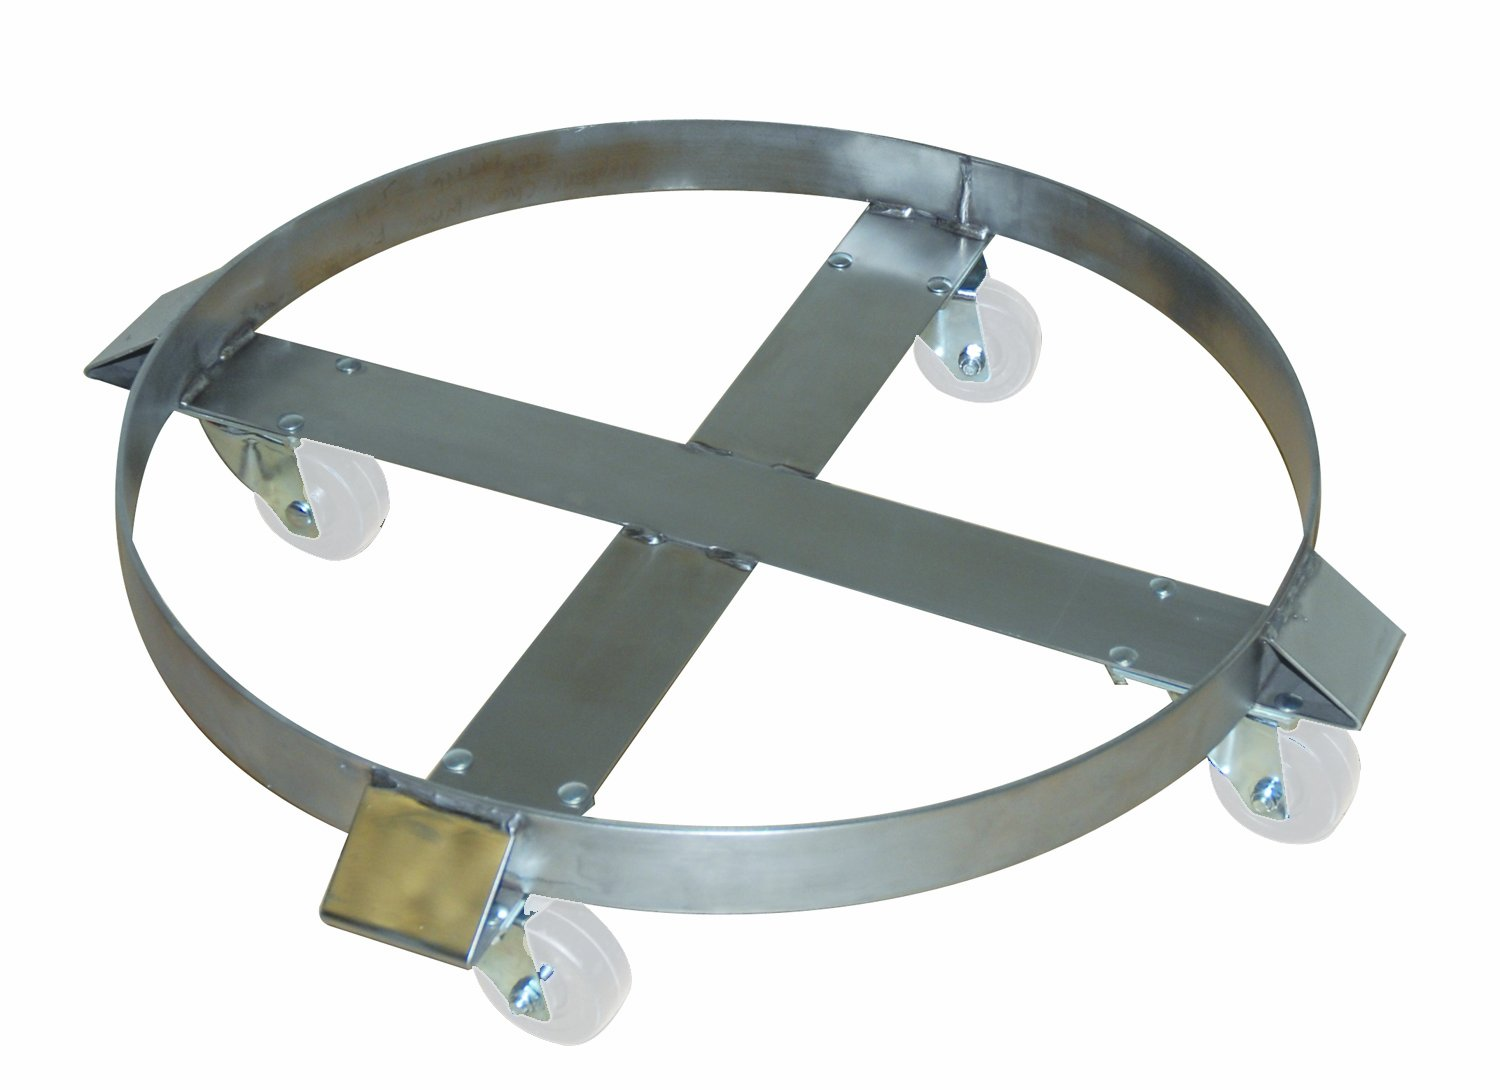 Wesco 240197 Drum Dolly for 55 gal Drums Stainless Swivel Rig with 3 White Polypropylene Casters Wesco Industrial Products Inc 1181Y57EA with 3 White Polypropylene Casters